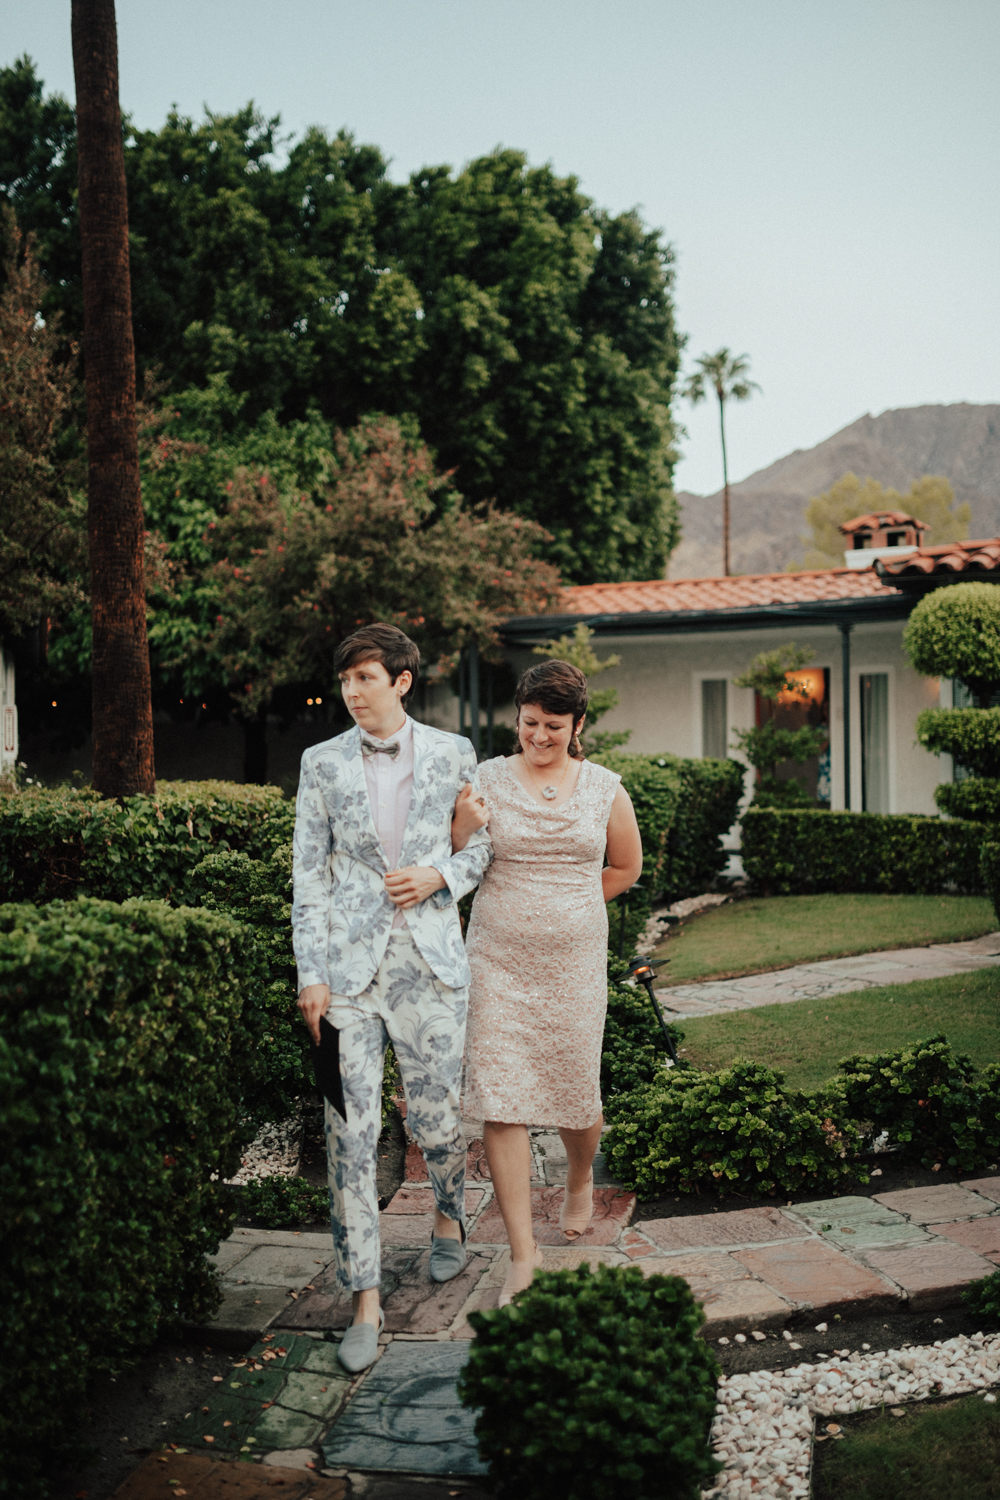 los angeles documentary wedding photographer-84.jpg